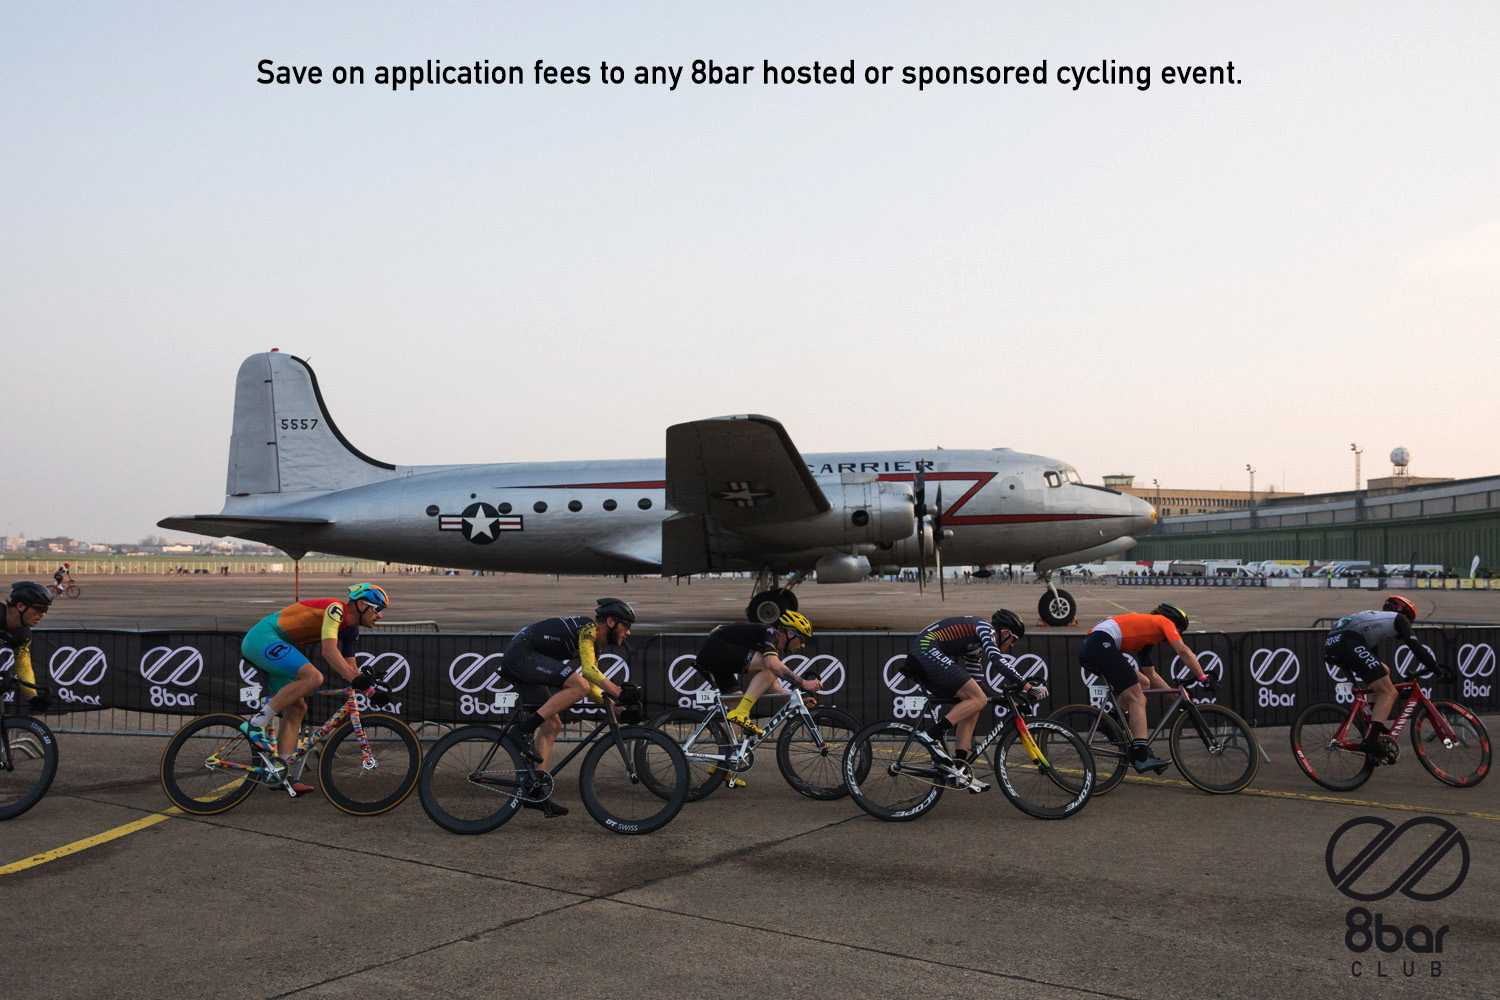 Save on application fees to any 8bar hosted or sponsored cycling event 002